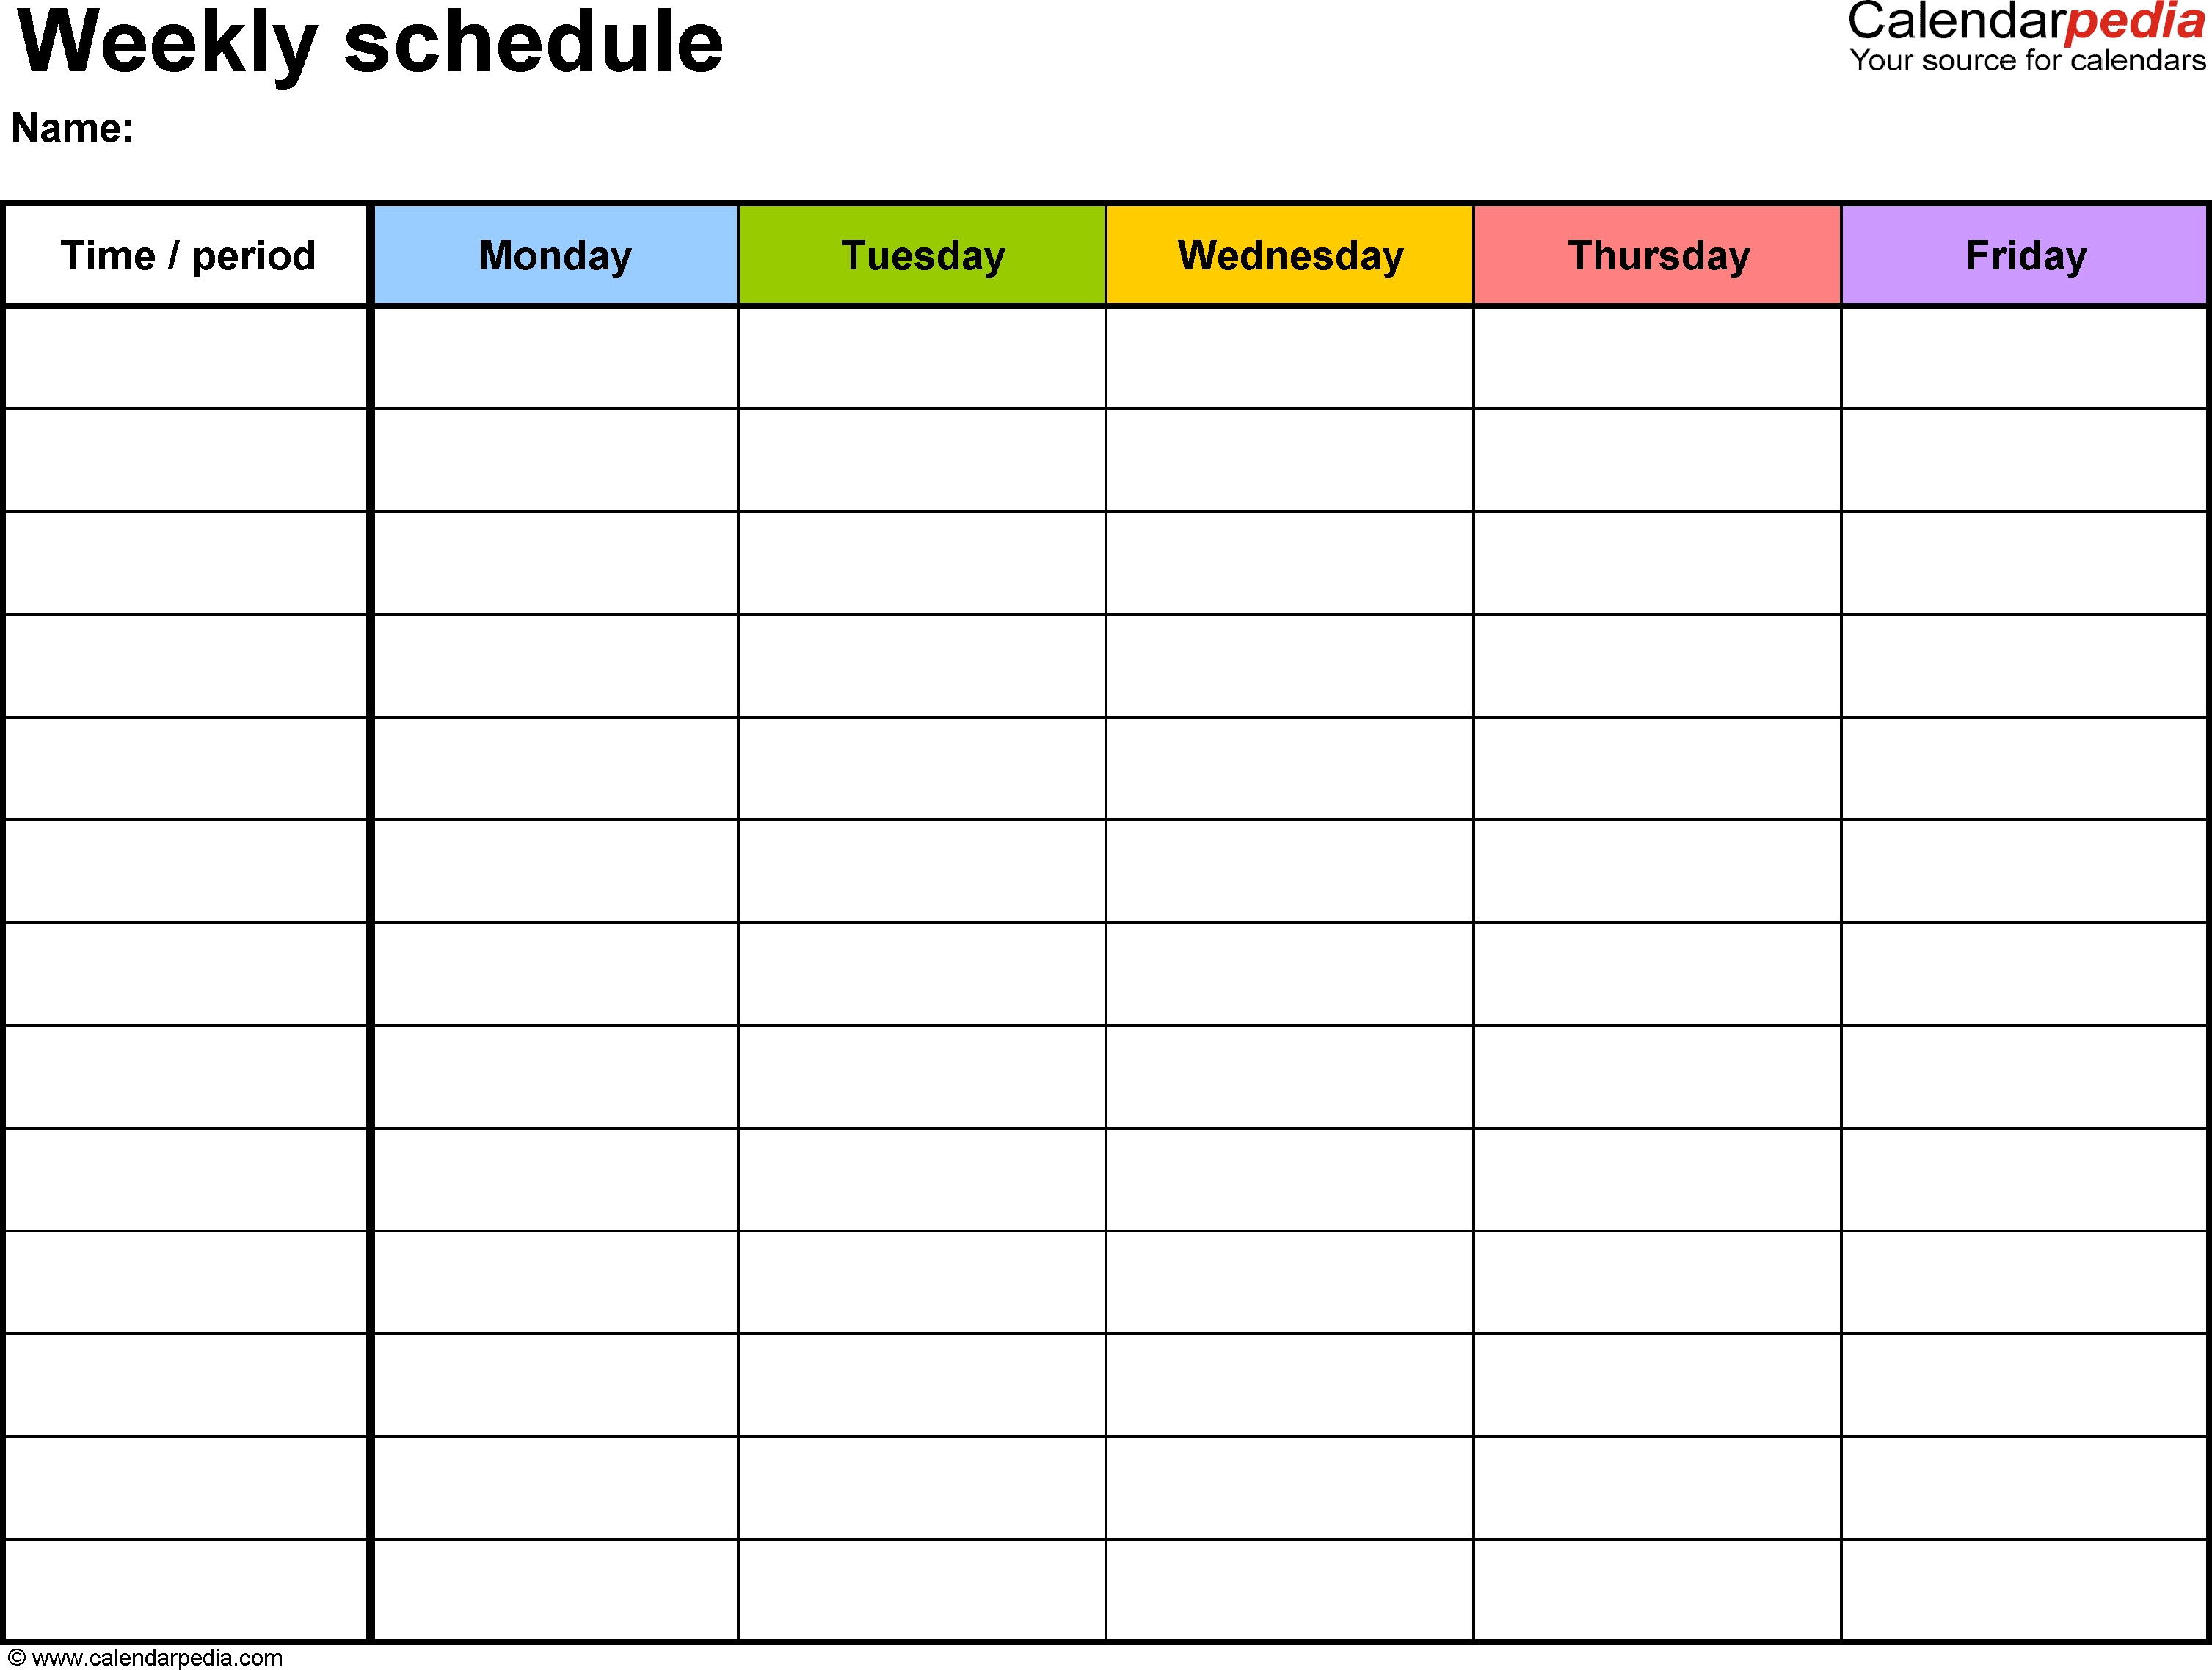 Free Weekly Schedule Templates For Pdf - 18 Templates-Monthly Work Schedule Template Printable